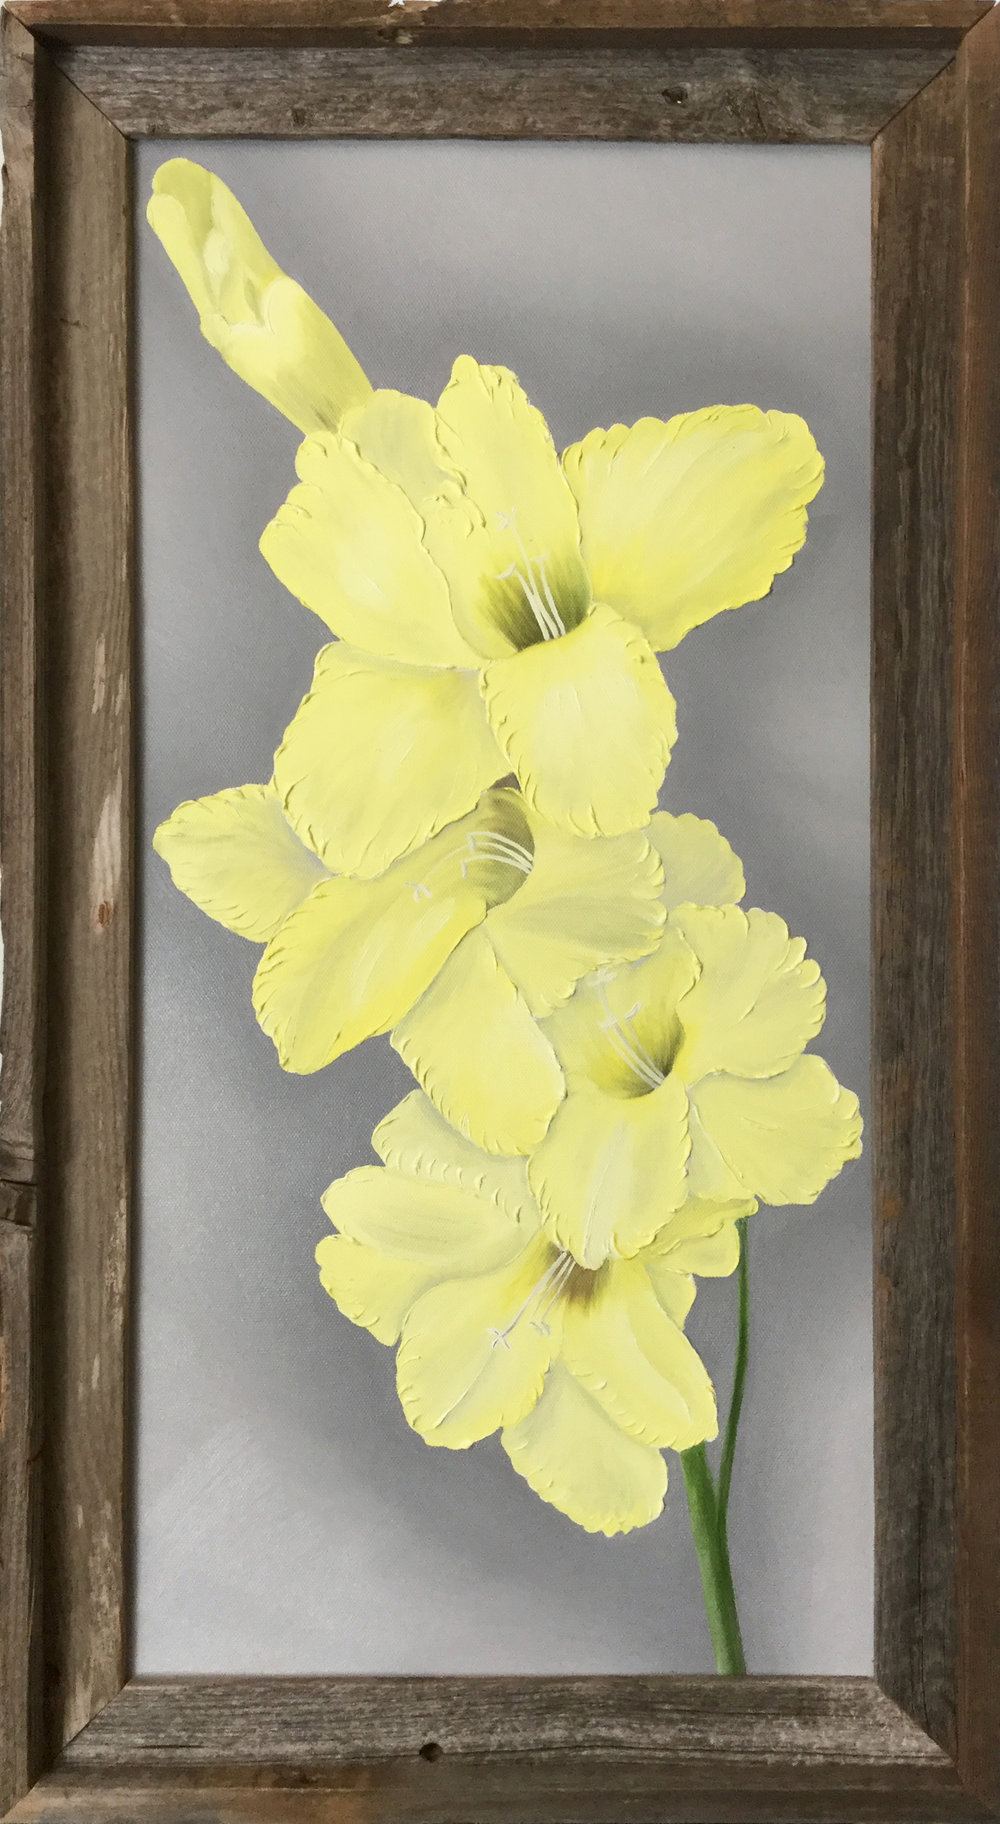 Yellow Gladiolus  2017 Oil on canvas 24 x 12 inches